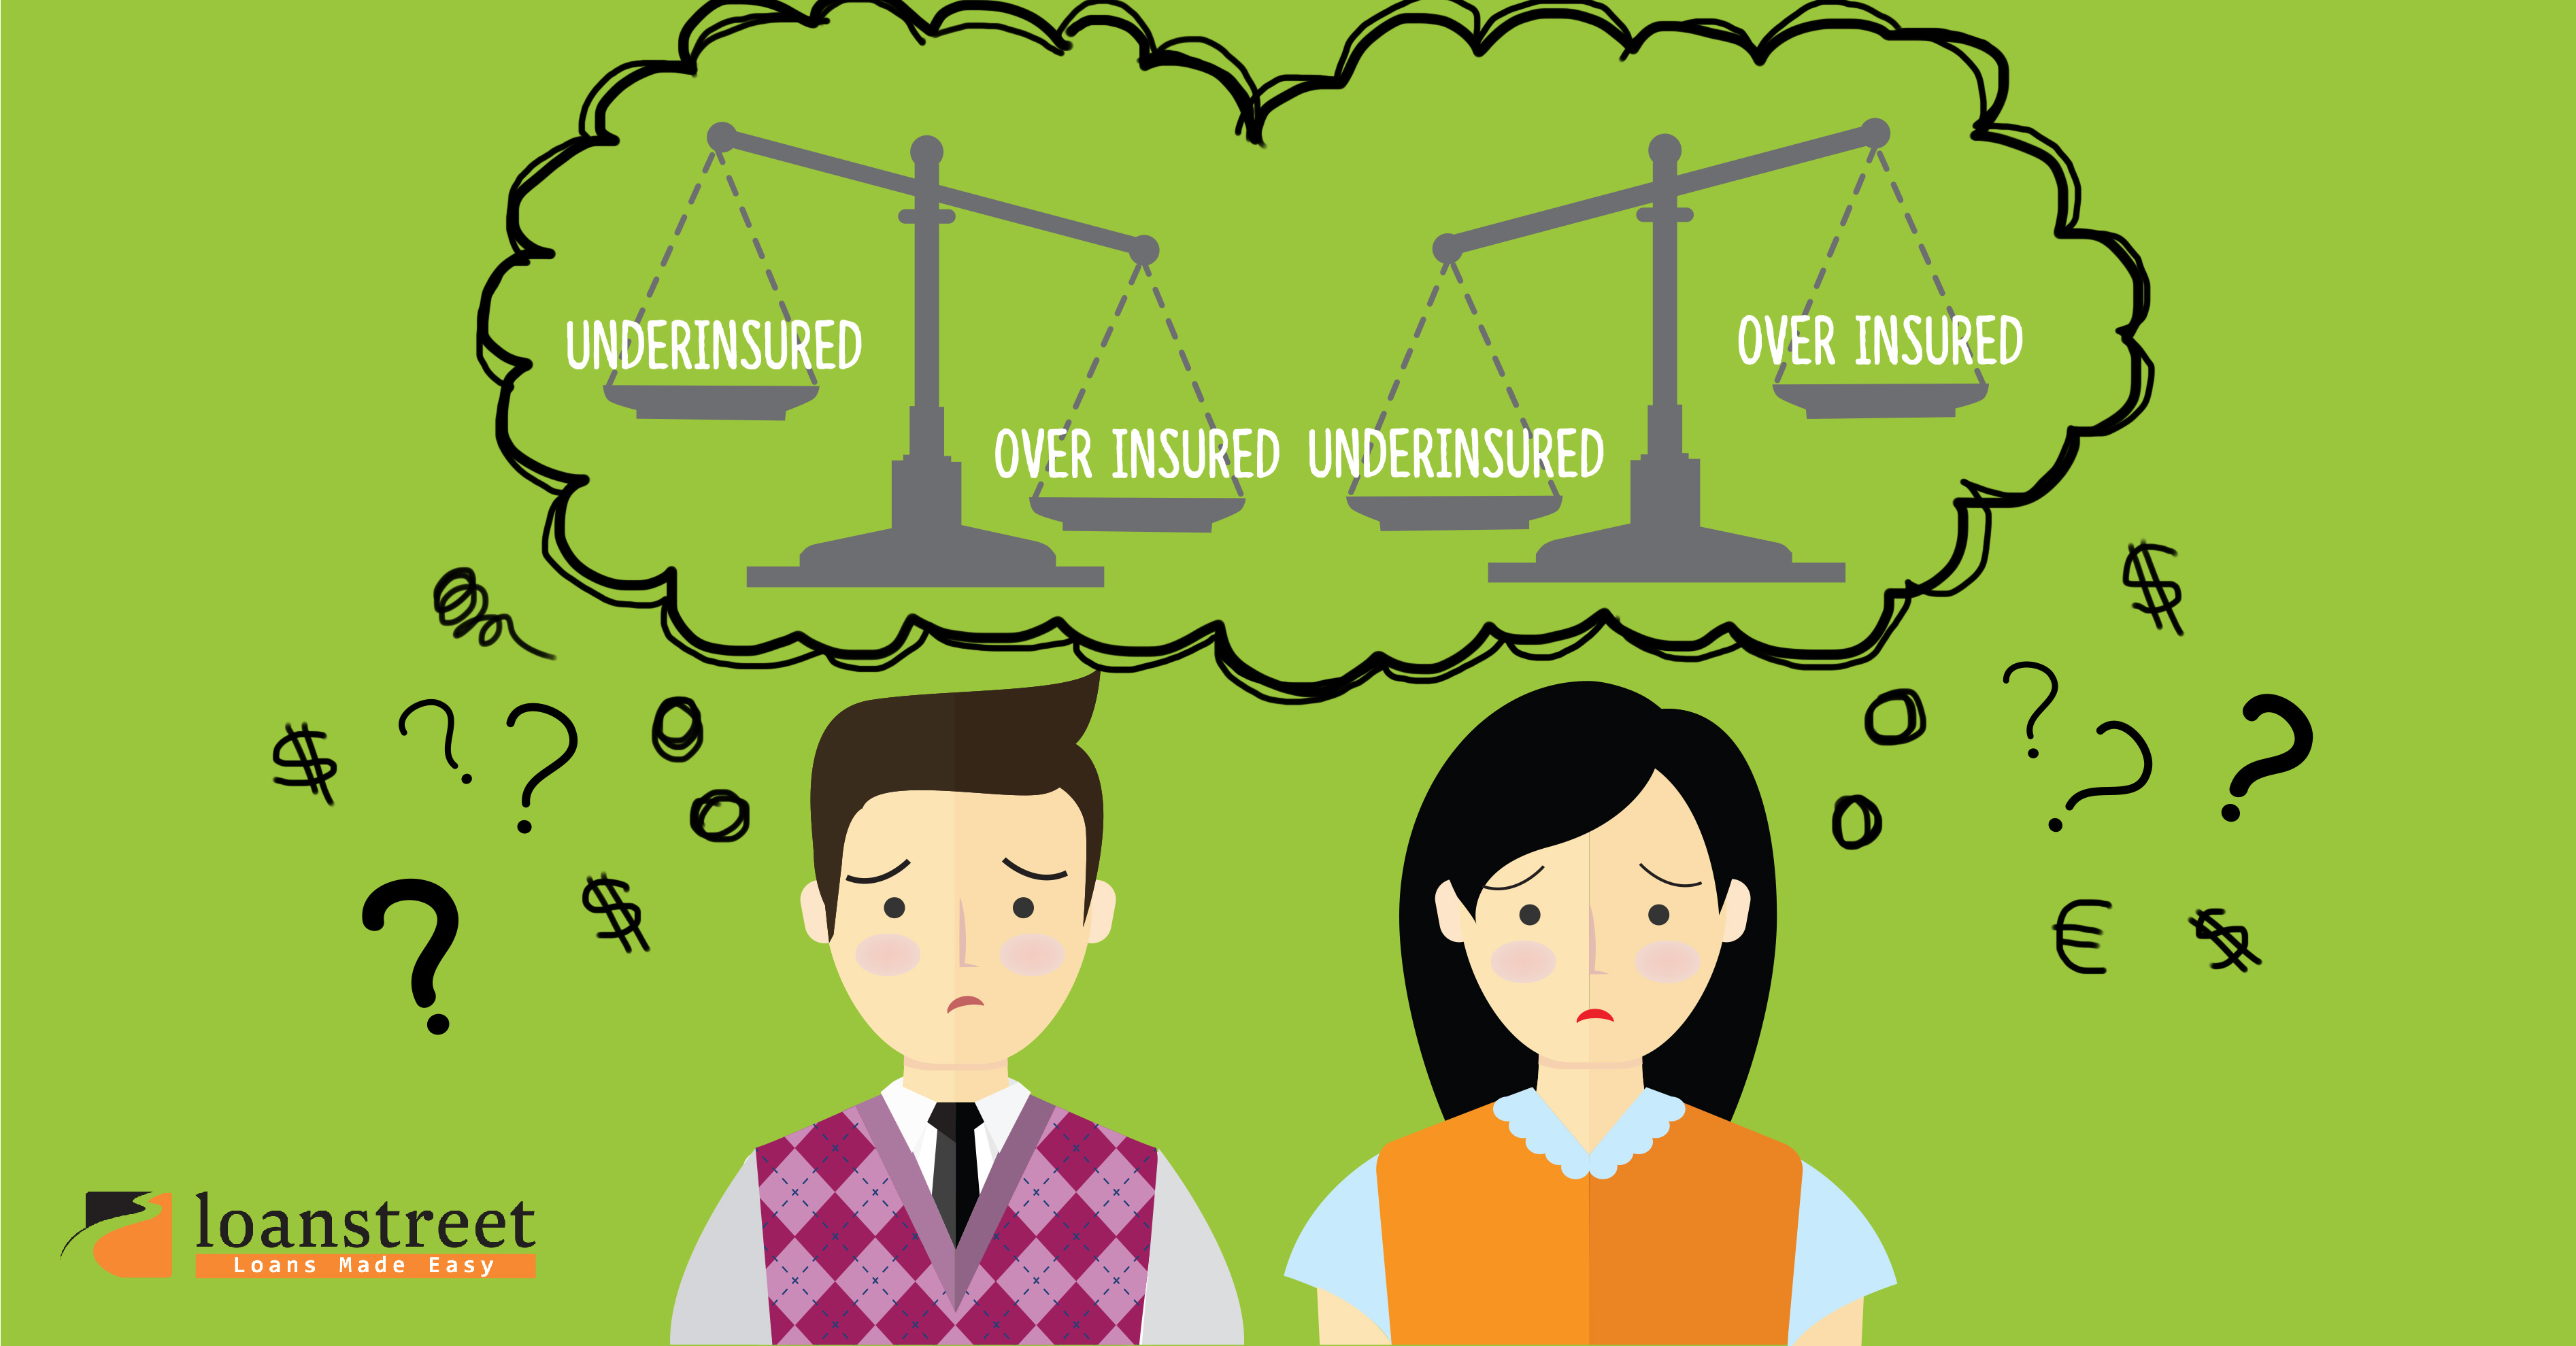 Are you over-insured or under-insured?